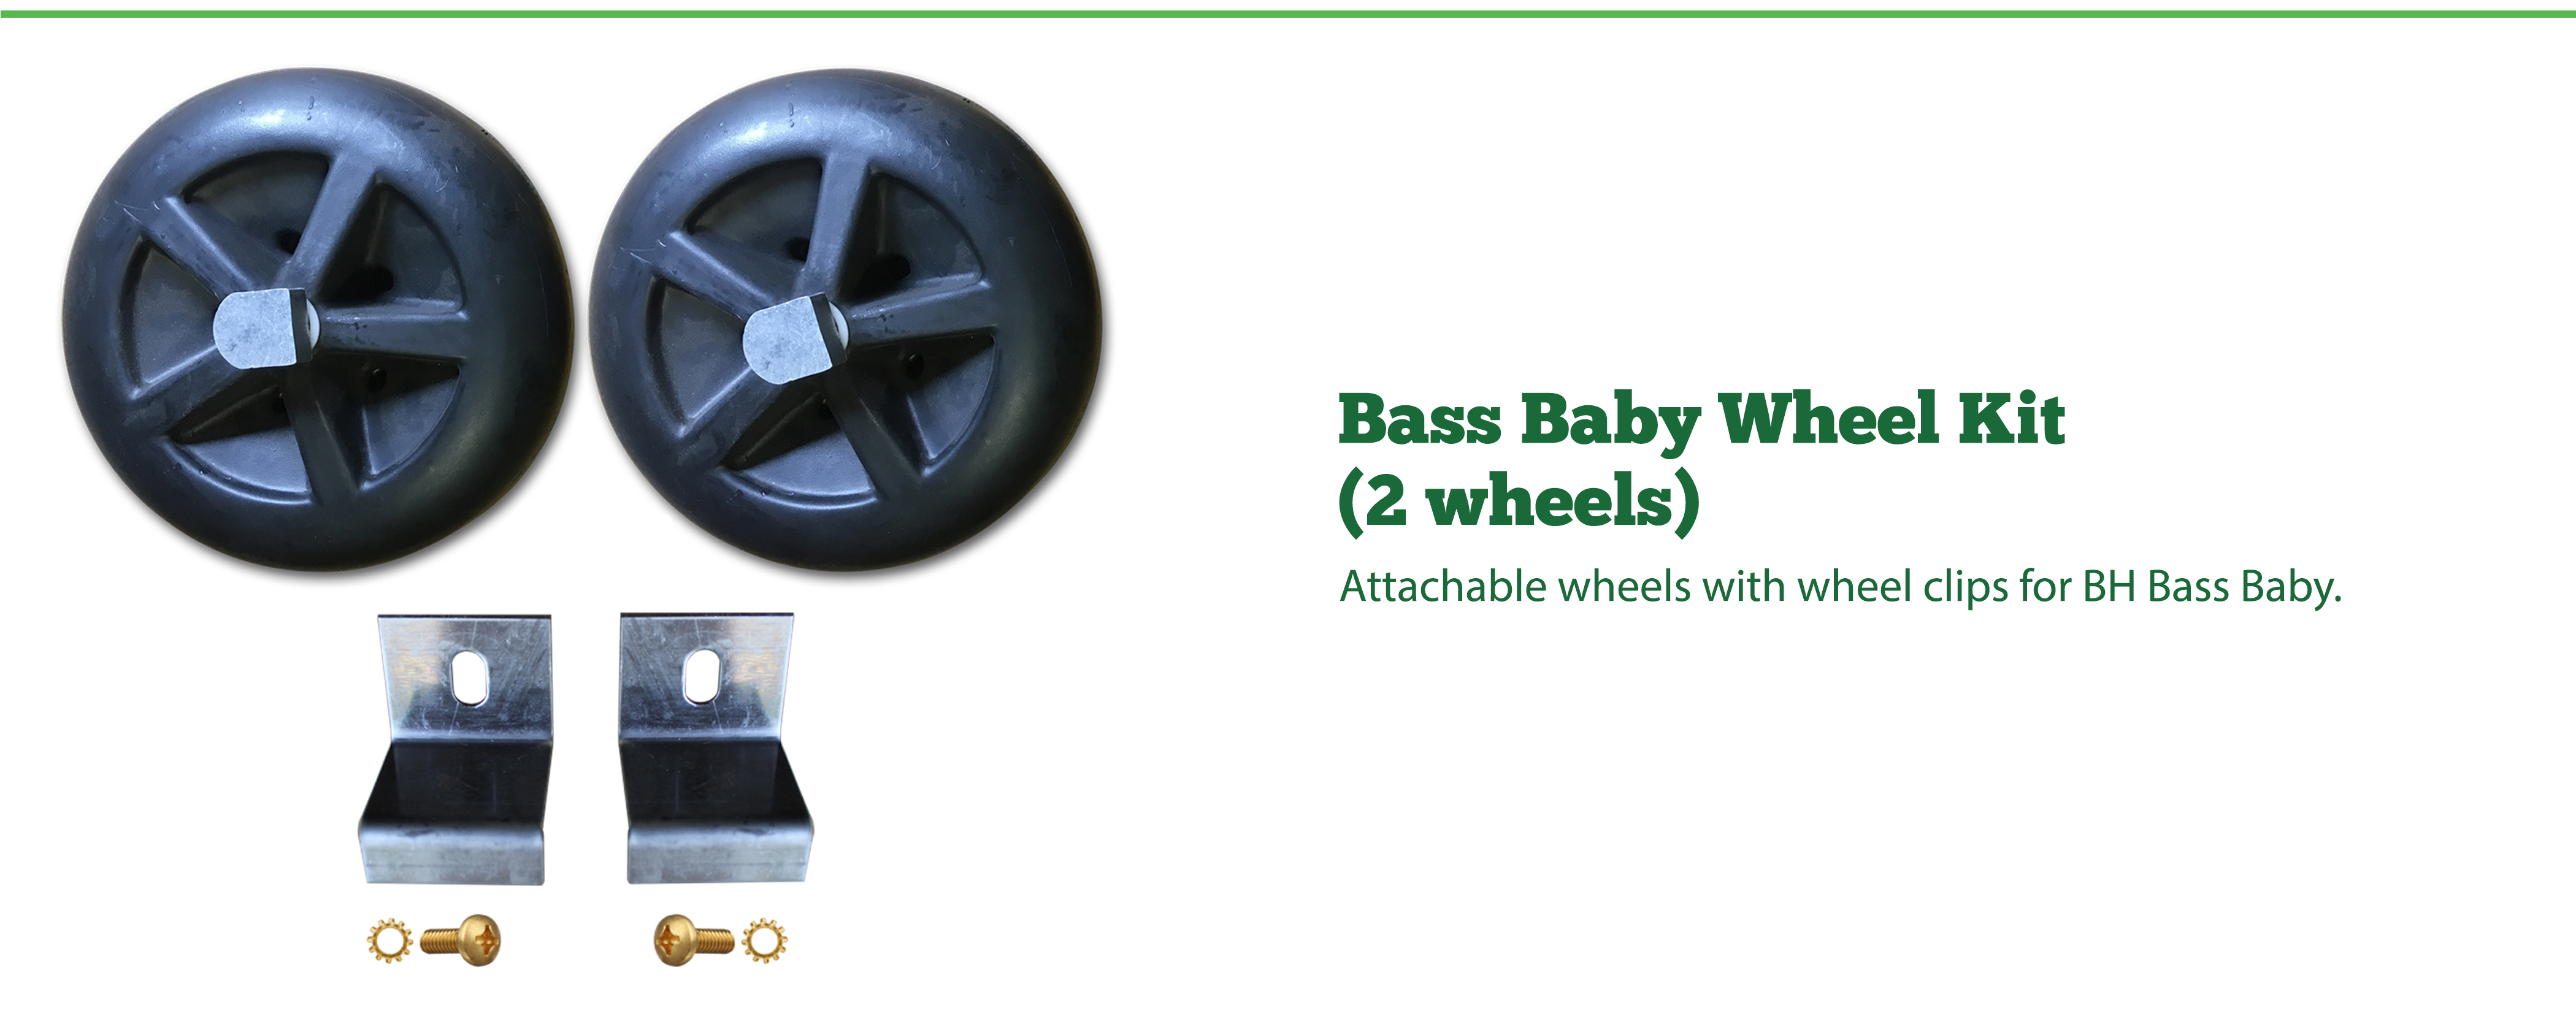 Bass Baby Wheel Kit